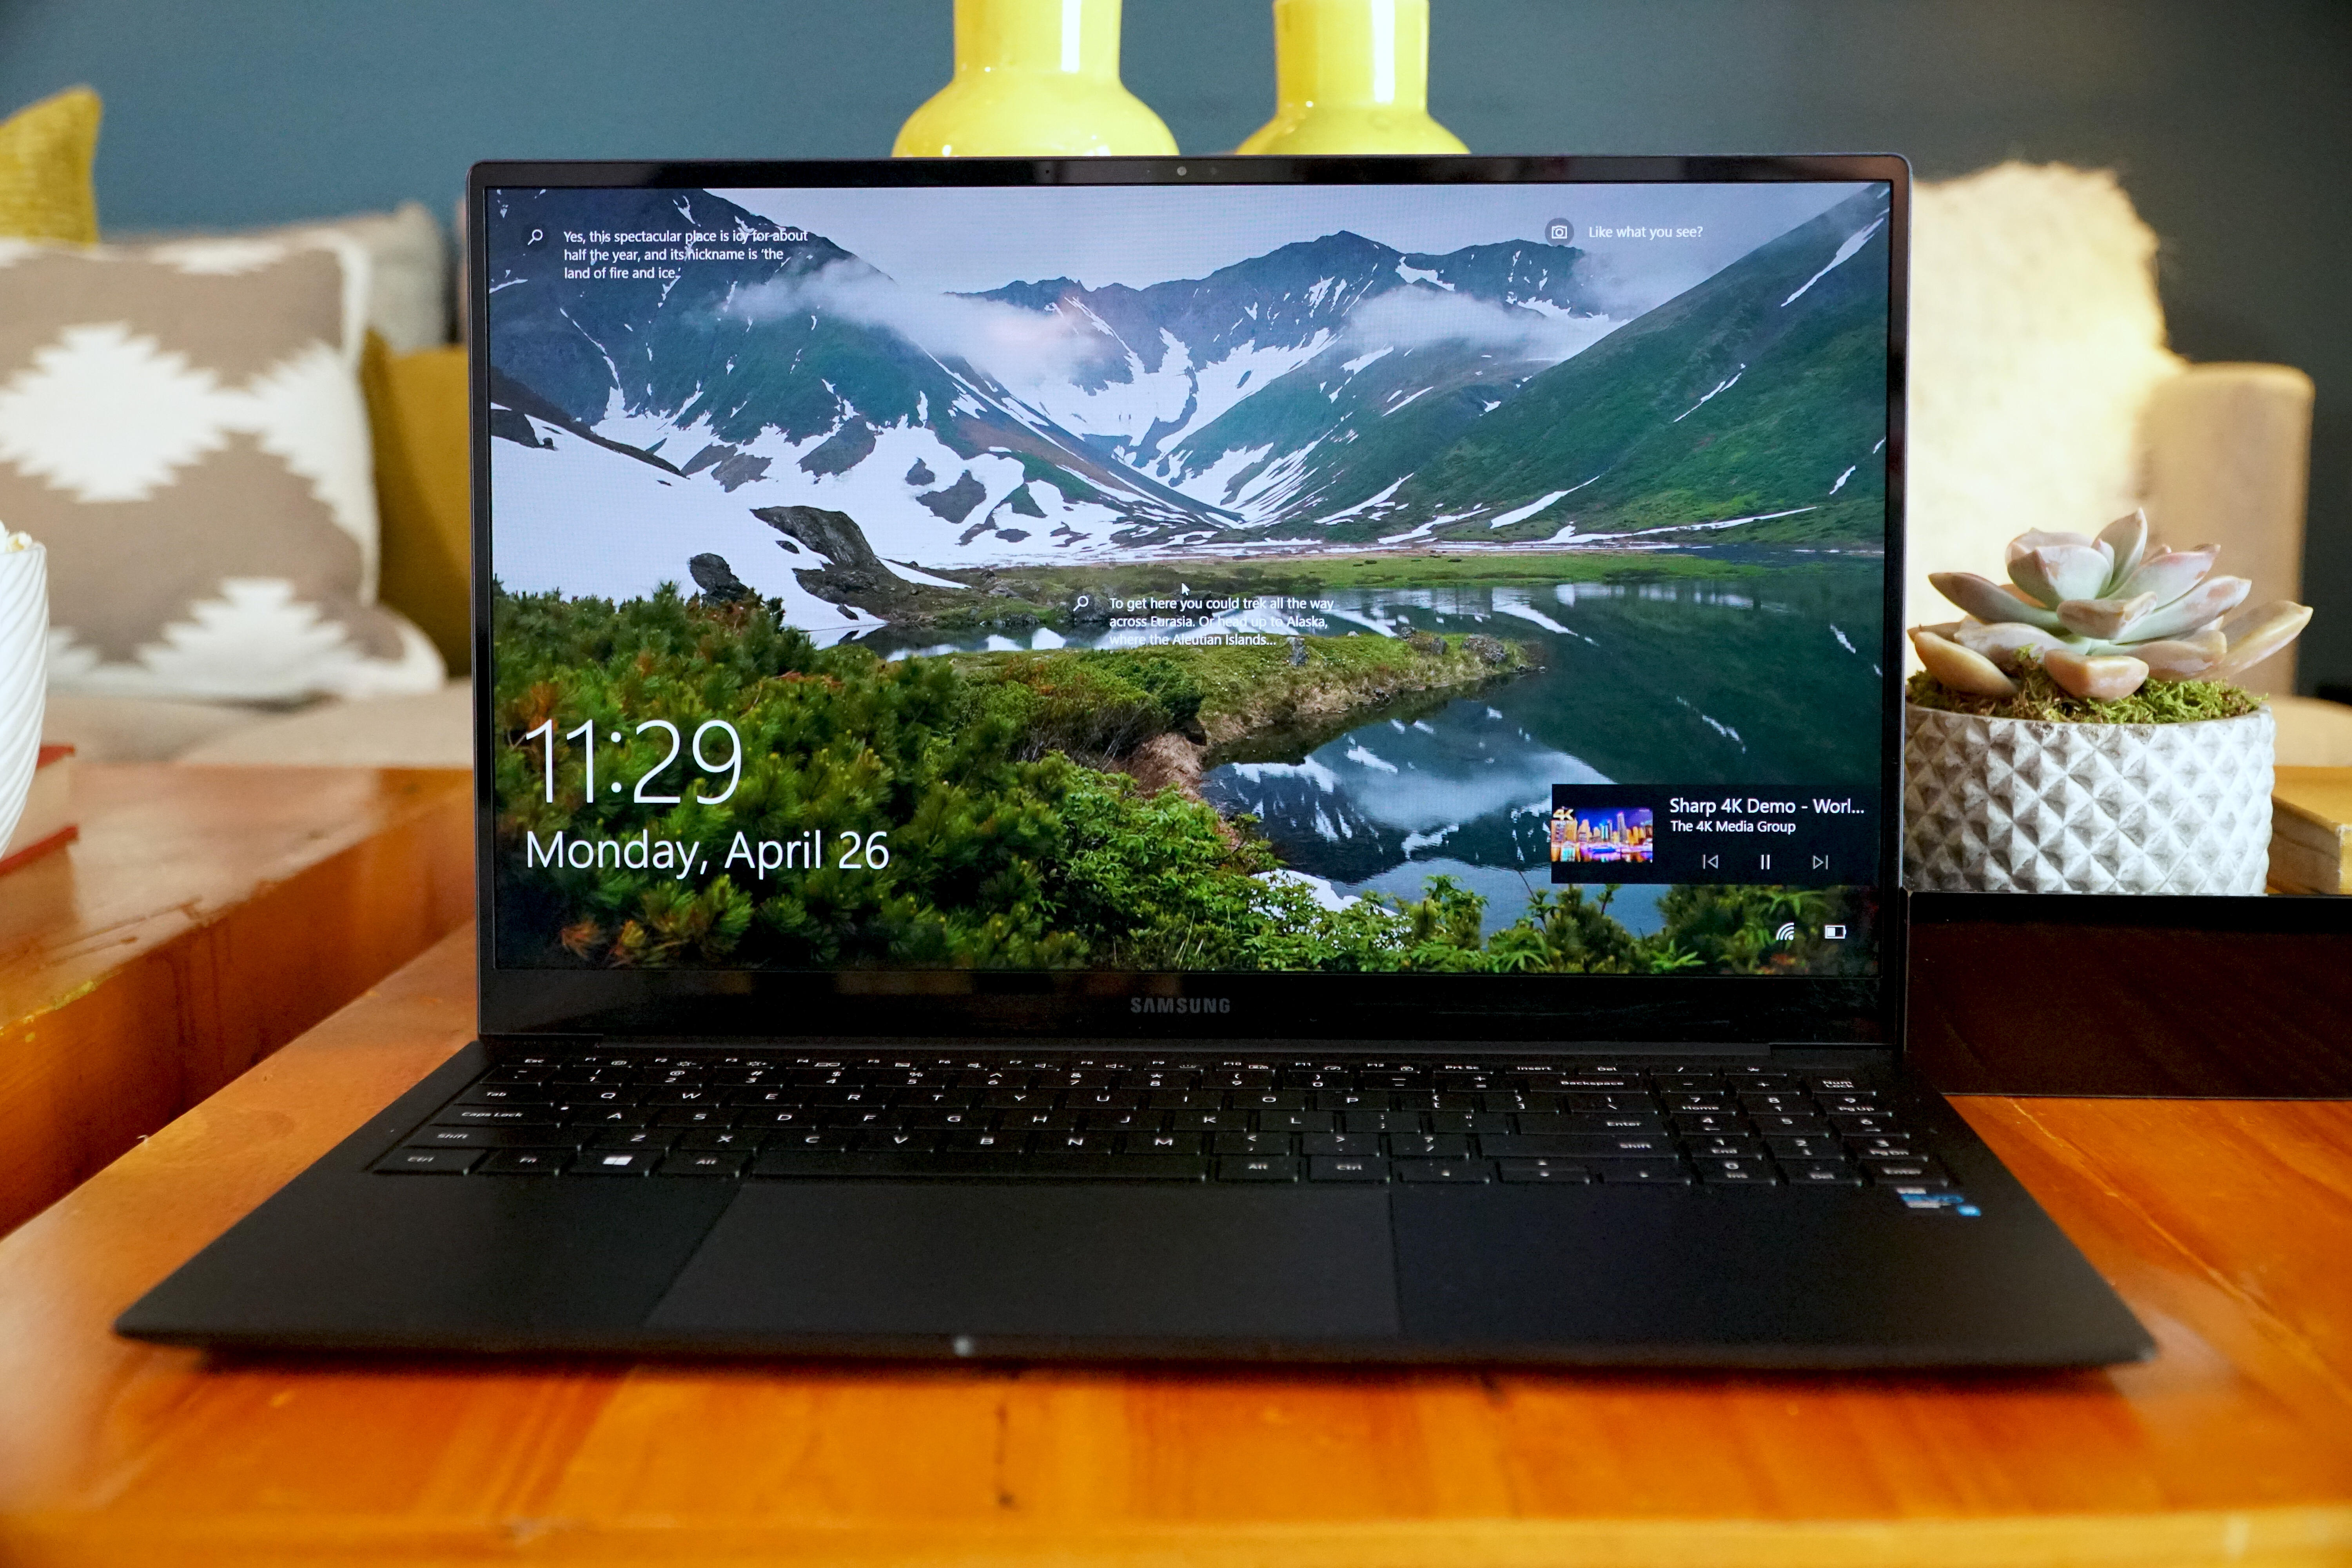 , MacBook Air vs. Samsung Galaxy Book Pro: Here's what $999 buys for each – Source CNET Computer News, iBSC Technologies - learning management services, LMS, Wordpress, CMS, Moodle, IT, Email, Web Hosting, Cloud Server,Cloud Computing